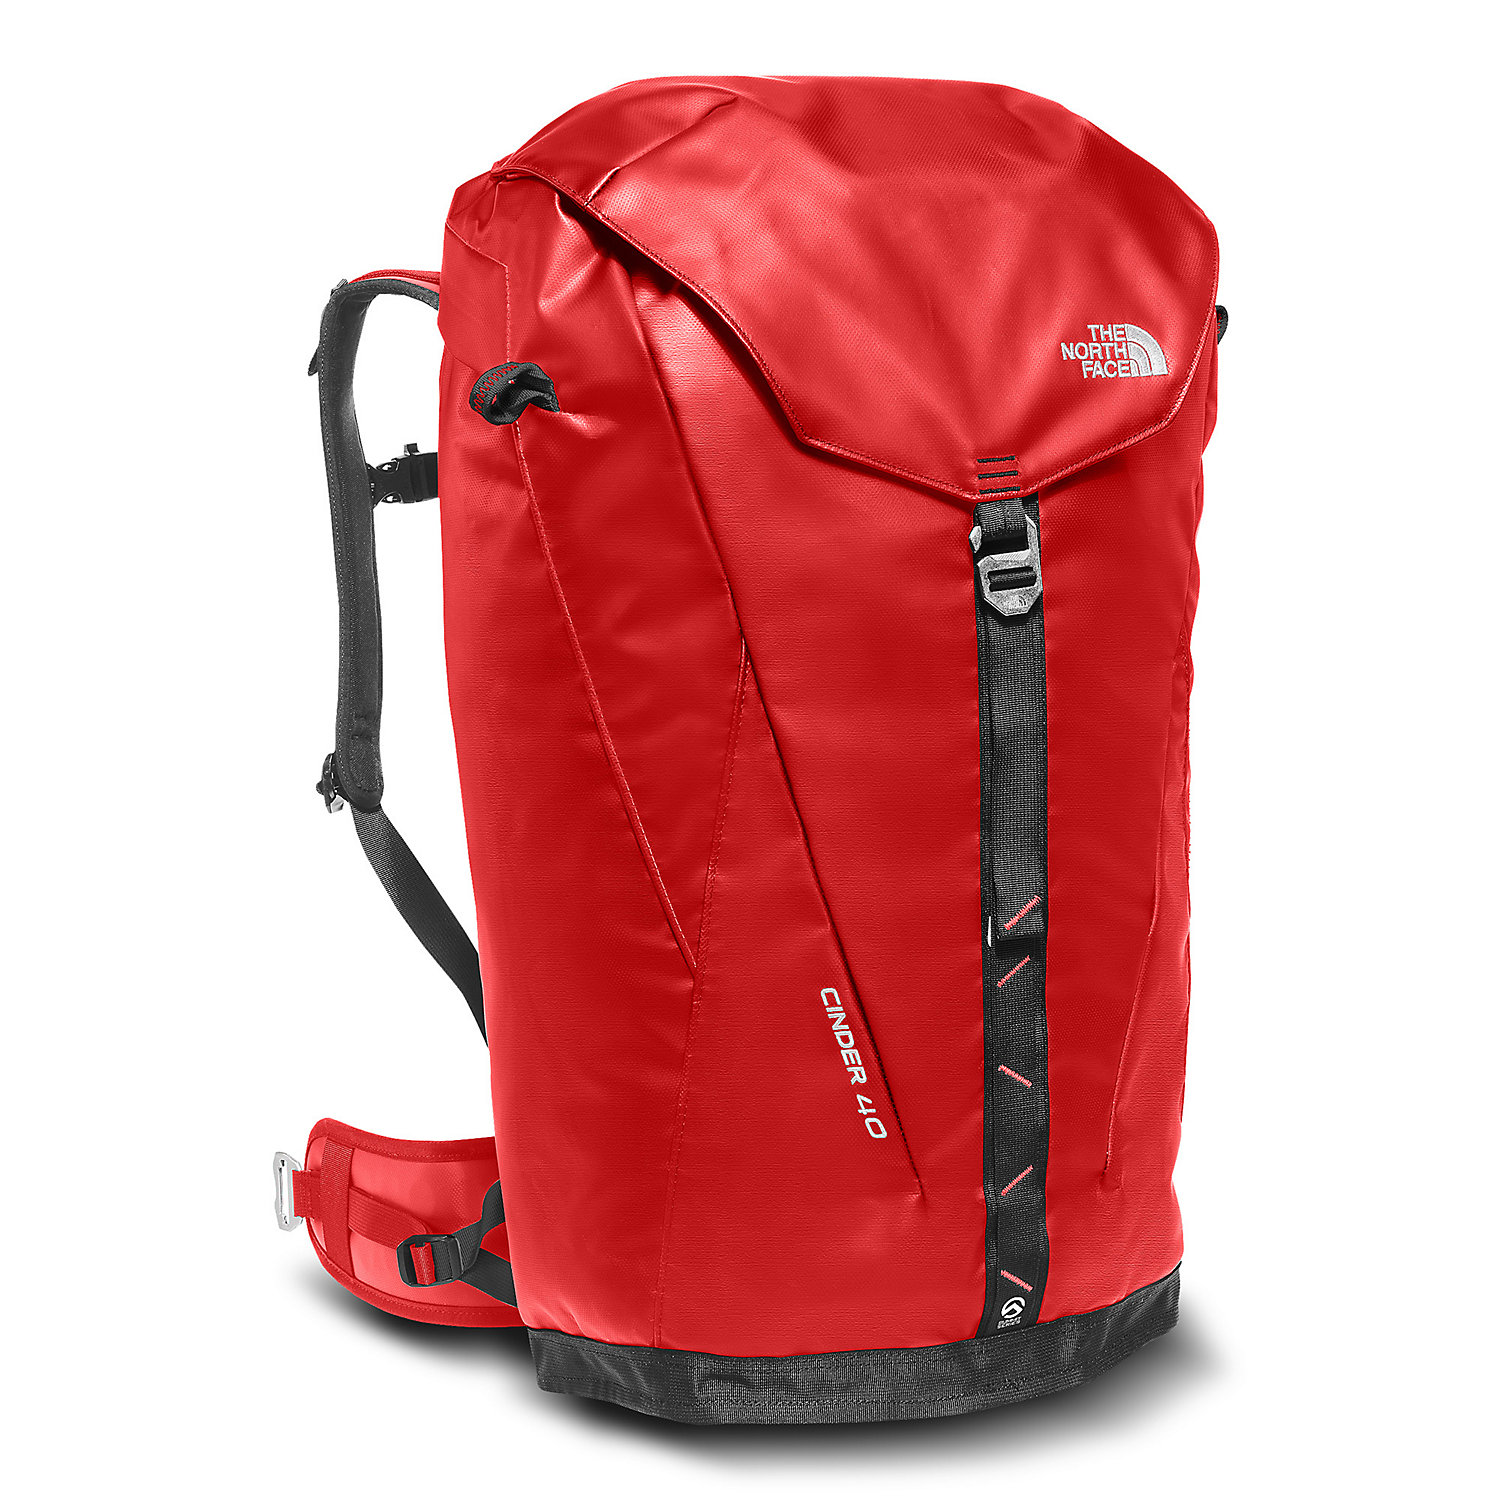 86e4a1a1bc88 The North Face Cinder 40 Pack - Moosejaw